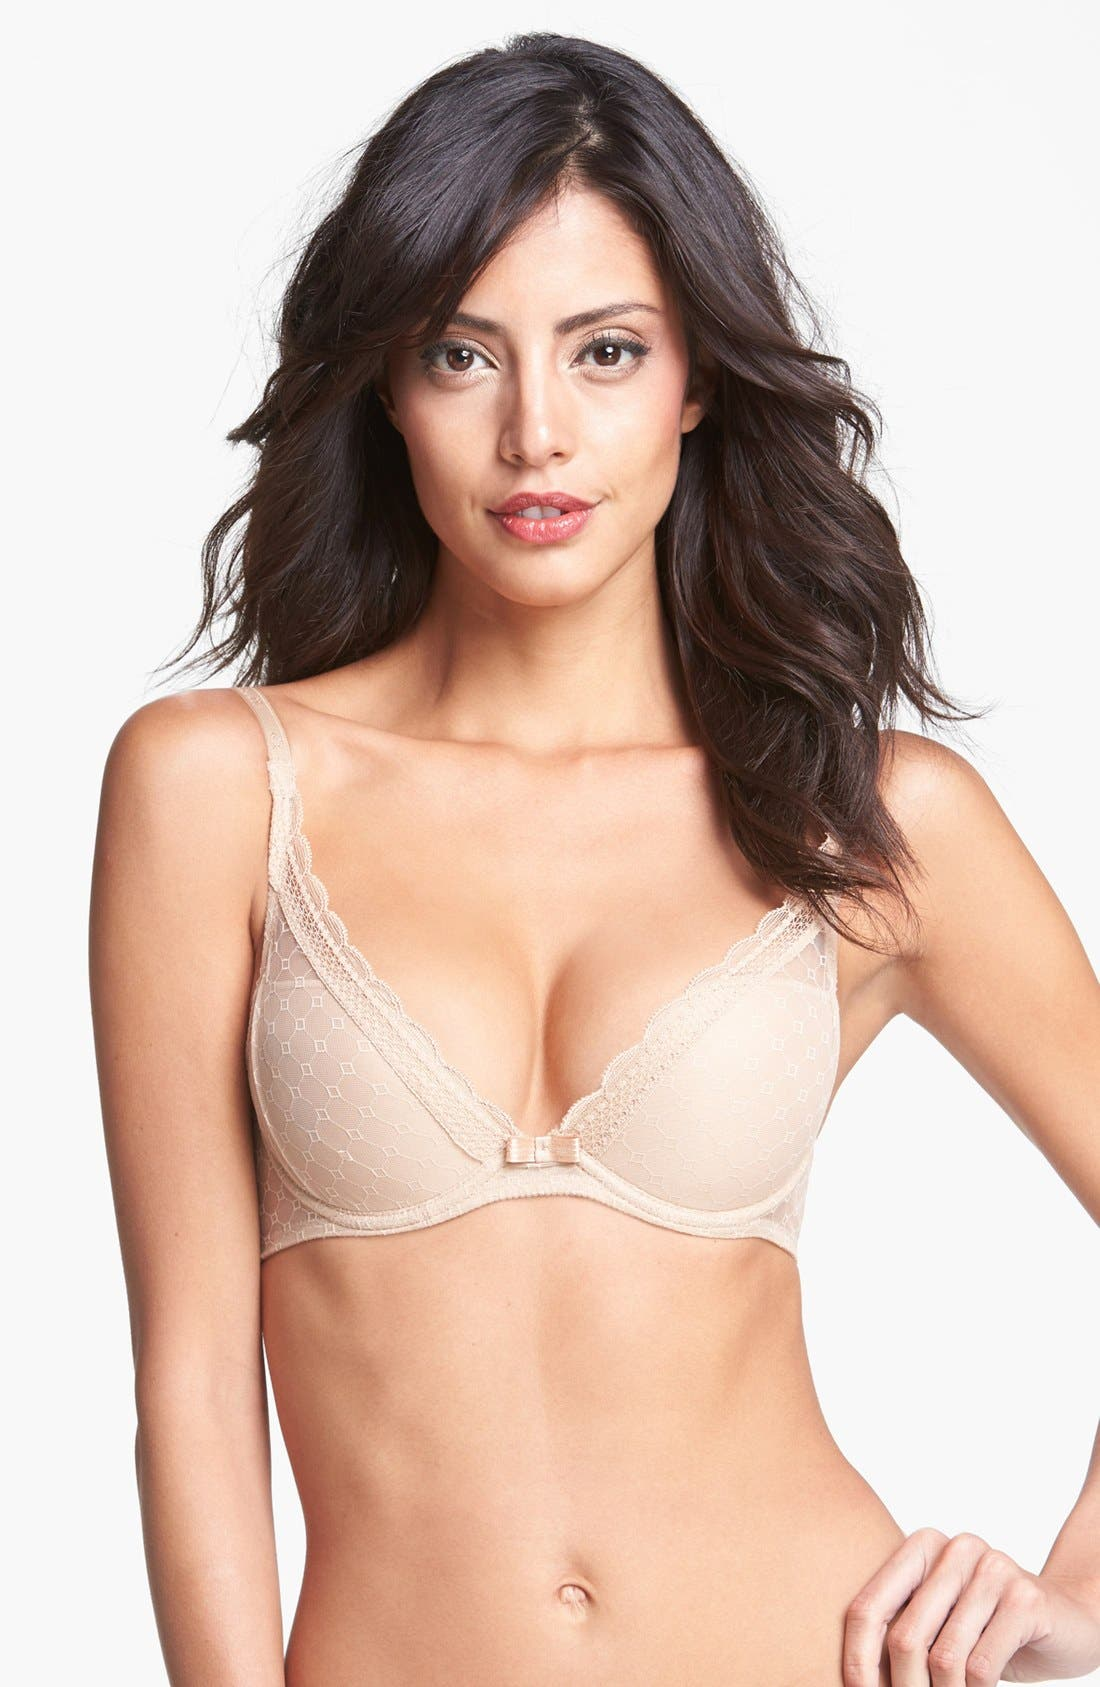 Alternate Image 1 Selected - Chantelle Intimates 'C Chic Sexy' Underwire Push-Up Plunge Bra